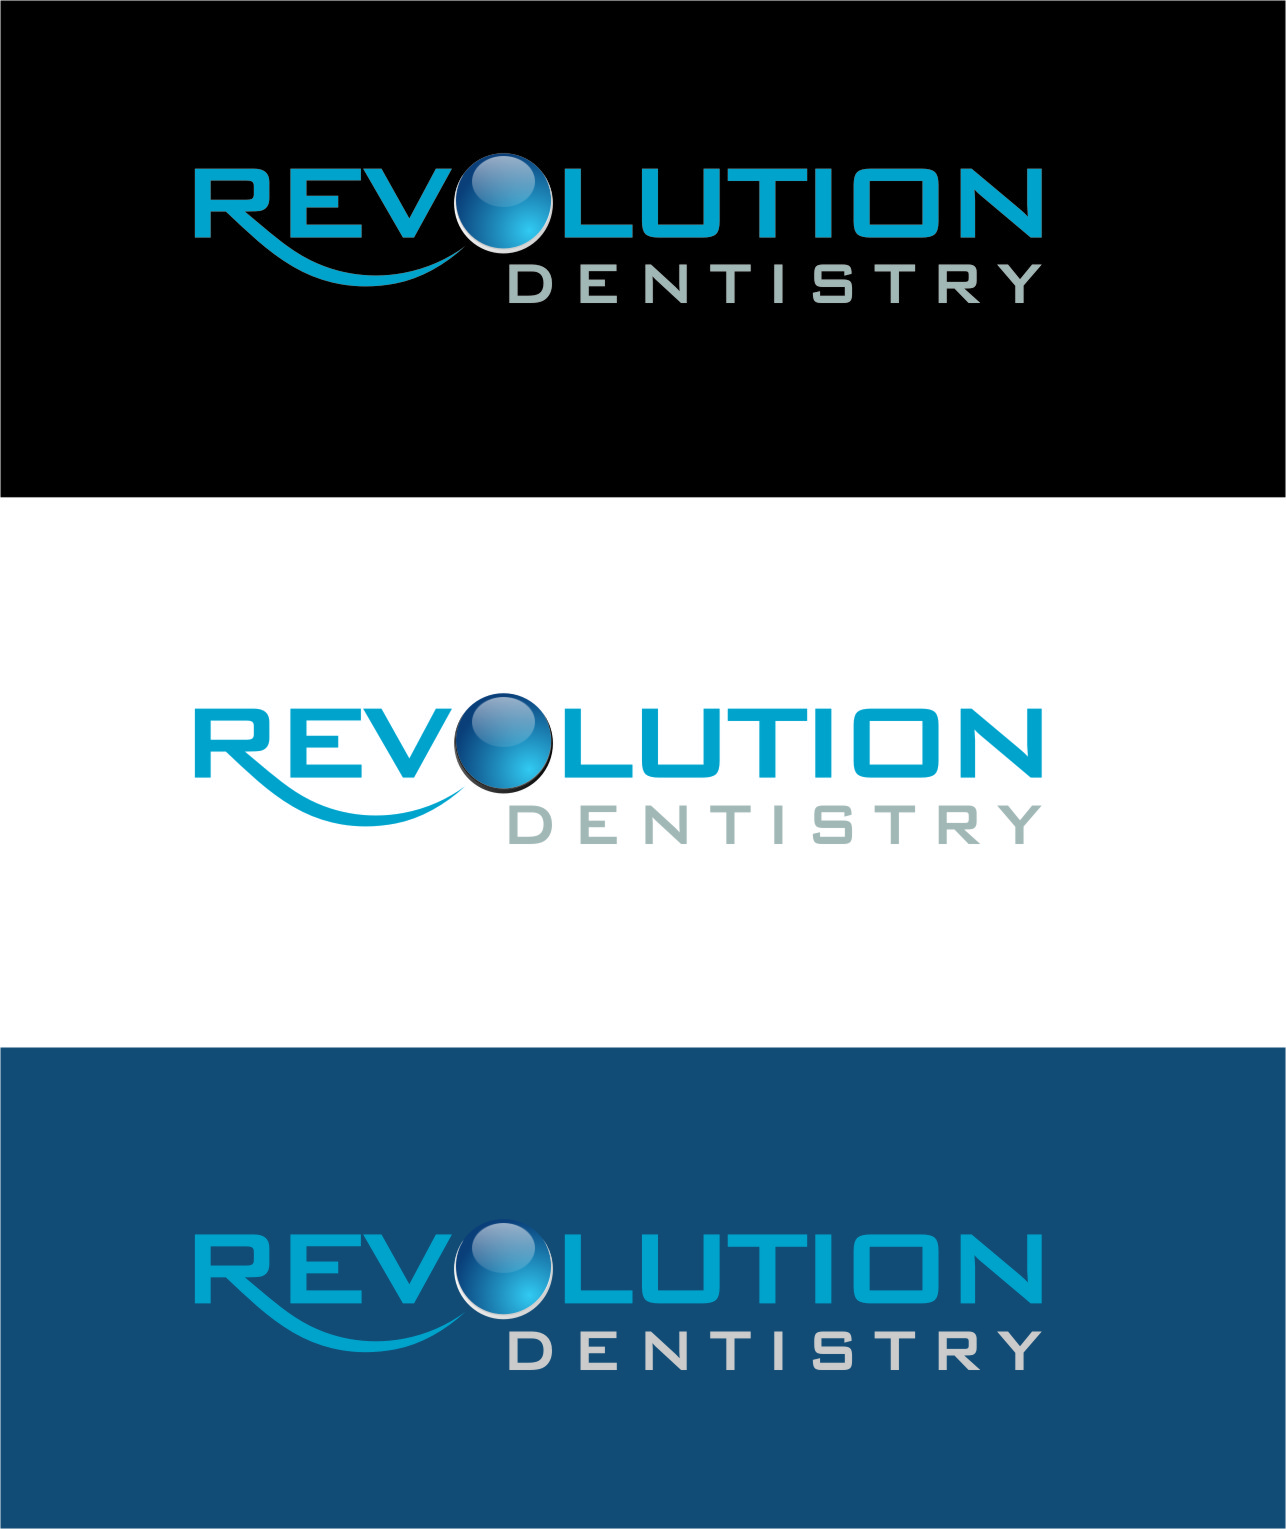 Logo Design by RasYa Muhammad Athaya - Entry No. 258 in the Logo Design Contest Artistic Logo Design for Revolution Dentistry.